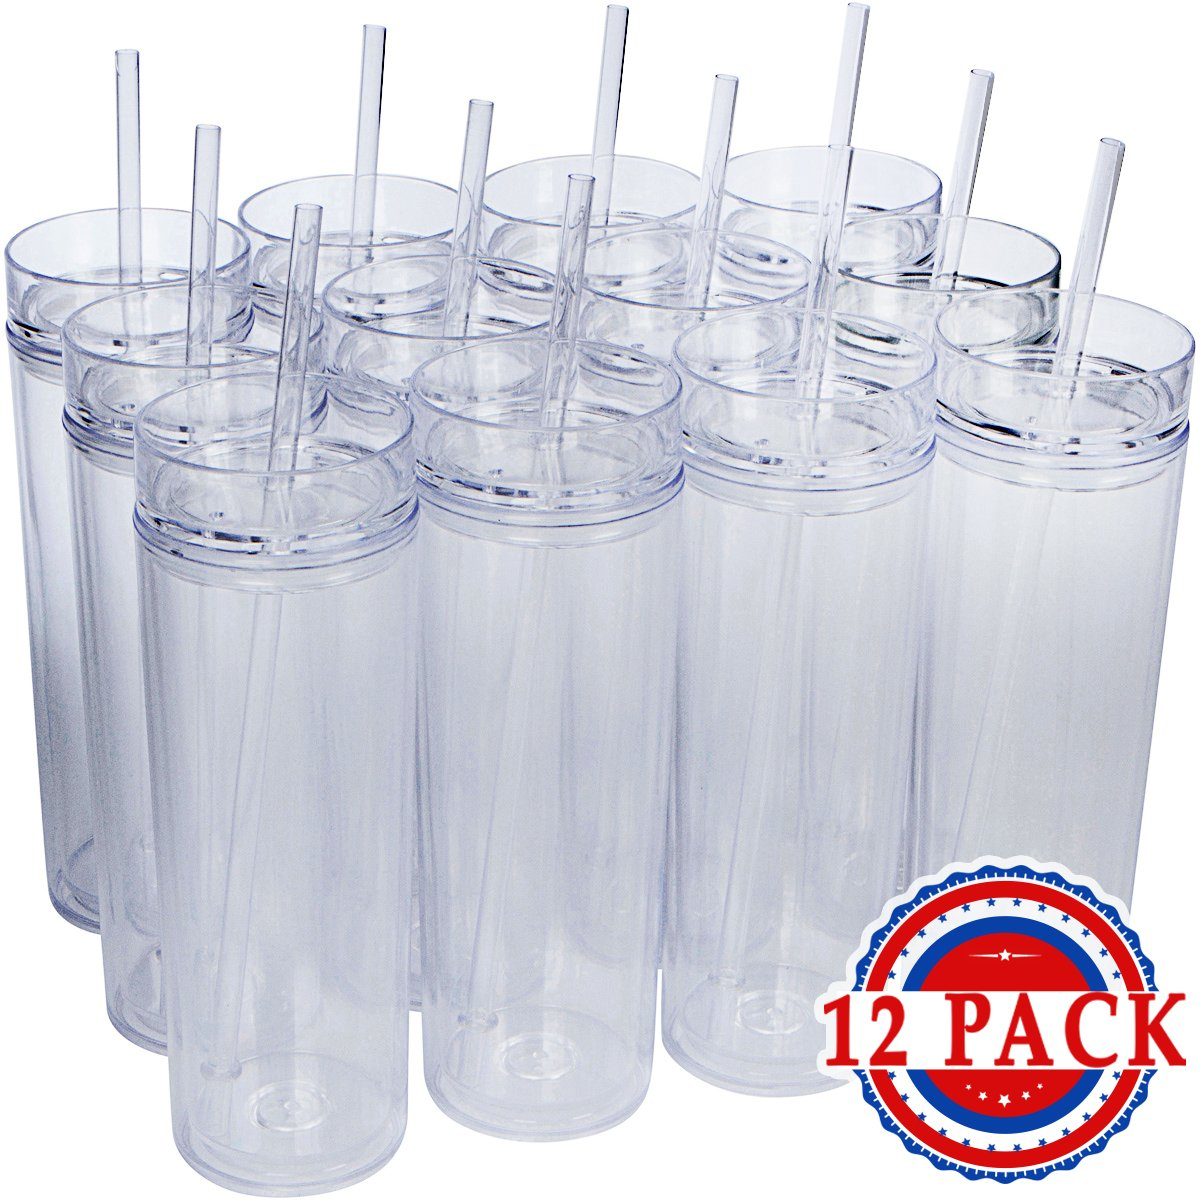 40aeaf671ce Get Quotations · 12 Pack - Insulated Acrylic Tumblers with Lids and  Reusable Straws, 16oz Clear Skinny Travel